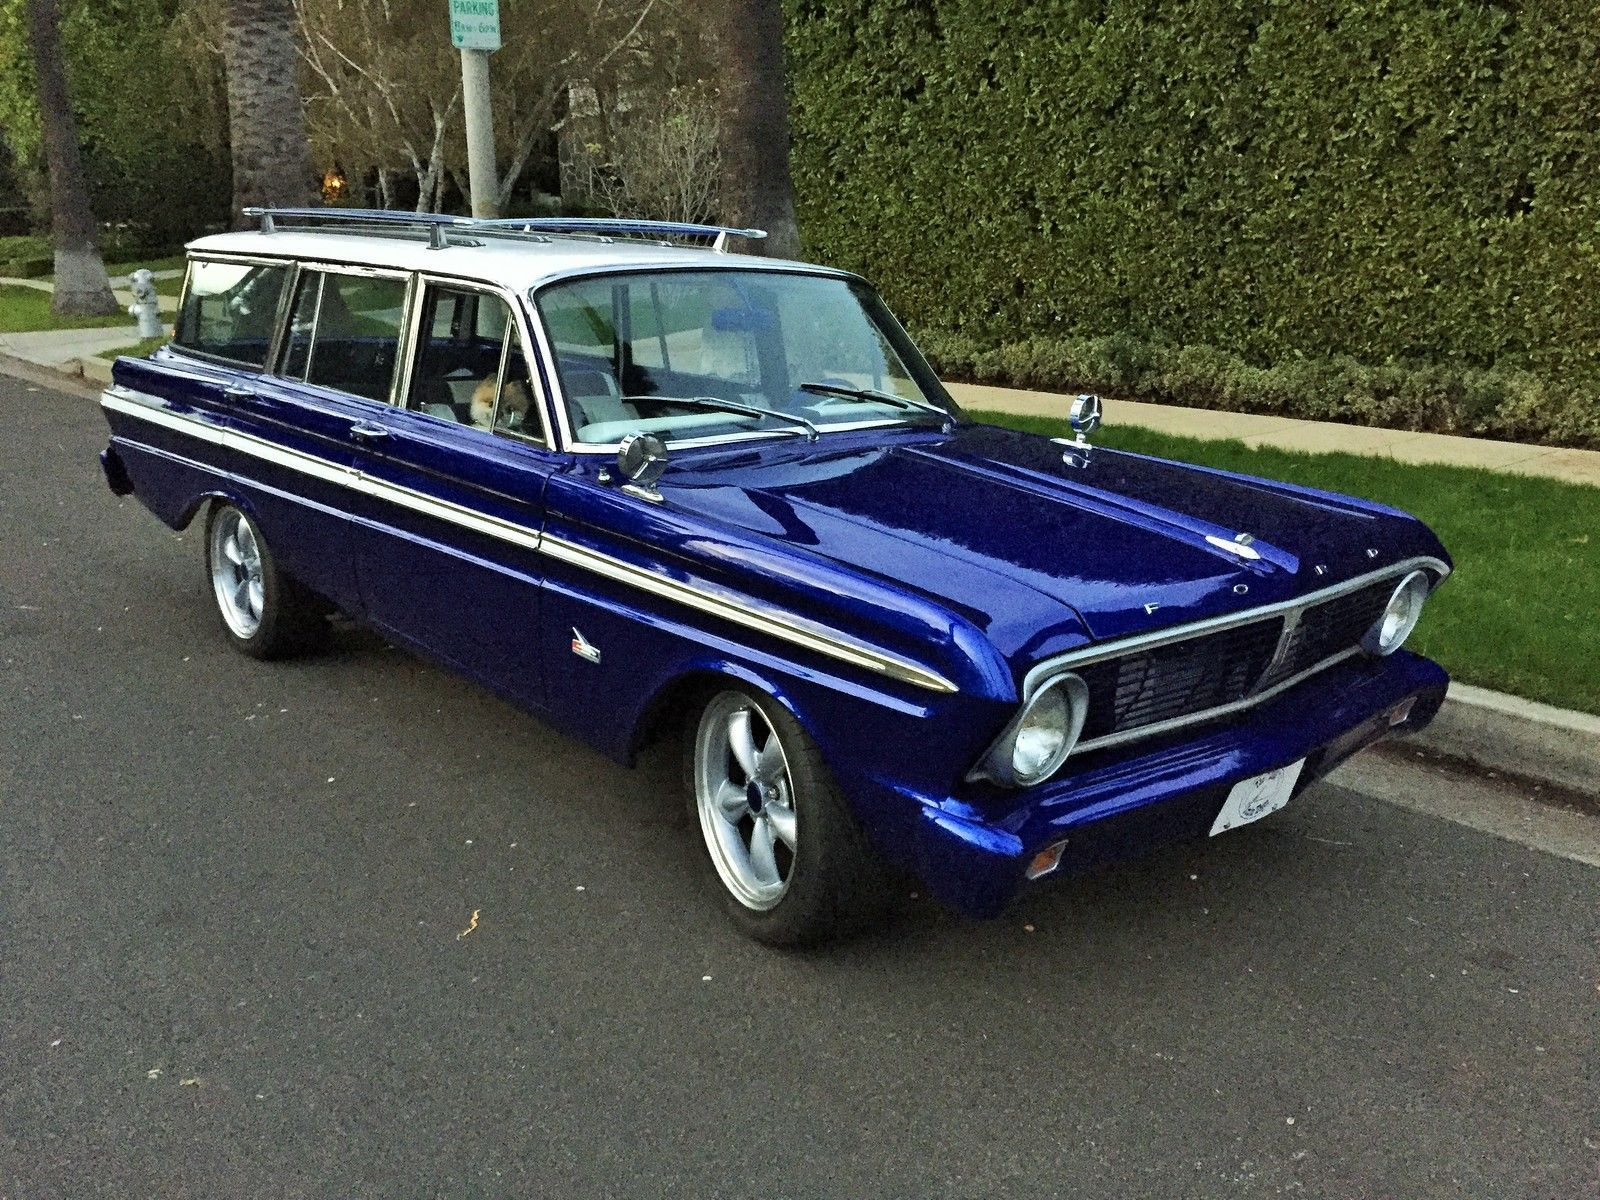 Details about 1968 Ford Falcon Falcon Wagon | Wagons Ho